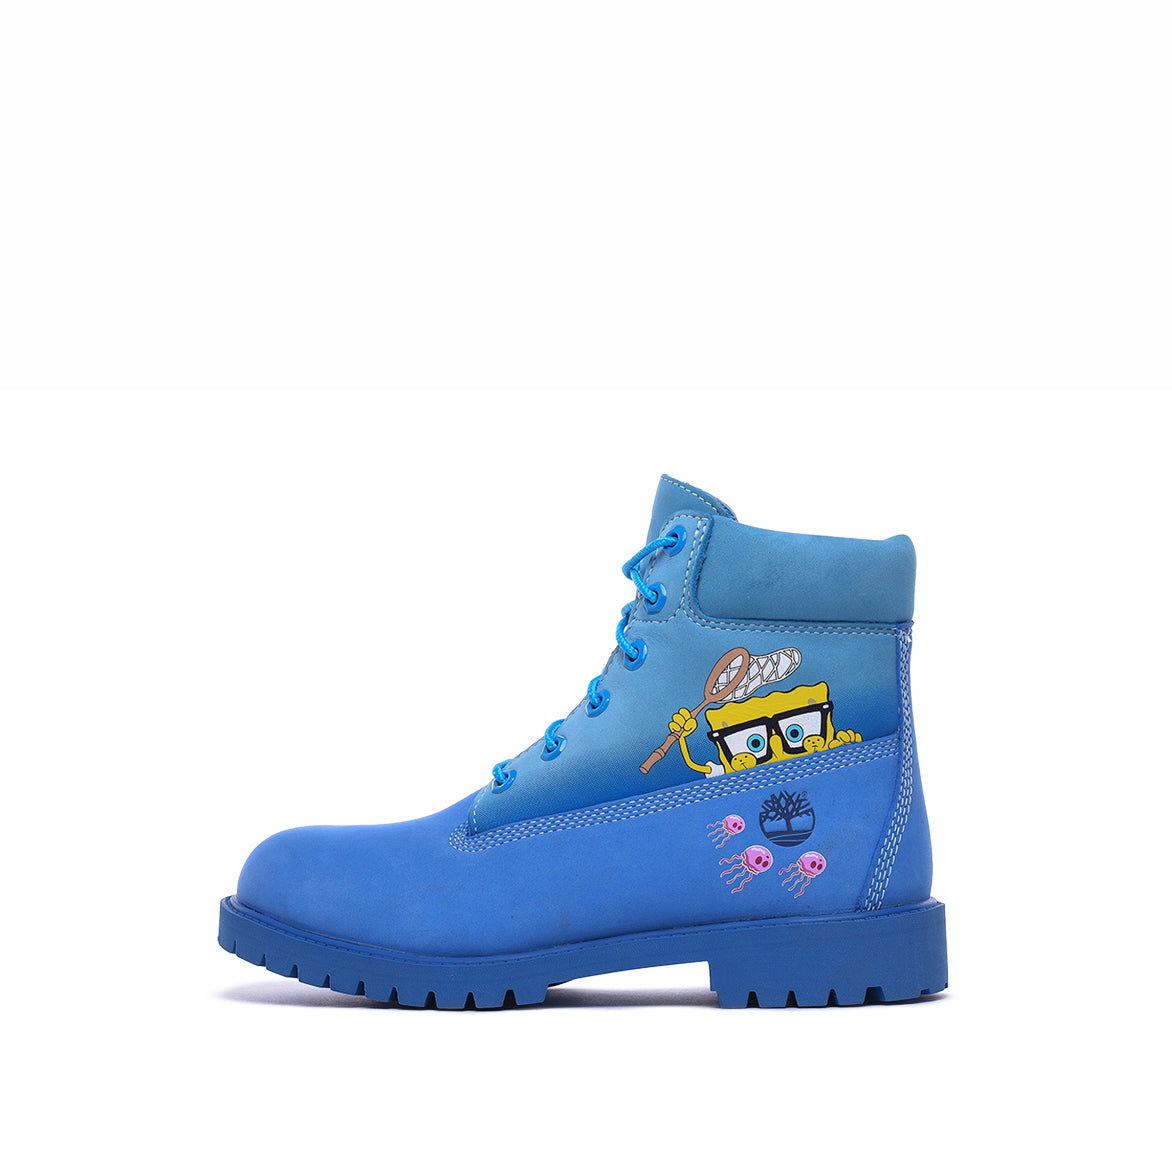 "SPONGEBOB X TIMBERLAND 6"" PRM BOOT (PS) - BRIGHT BLUE"